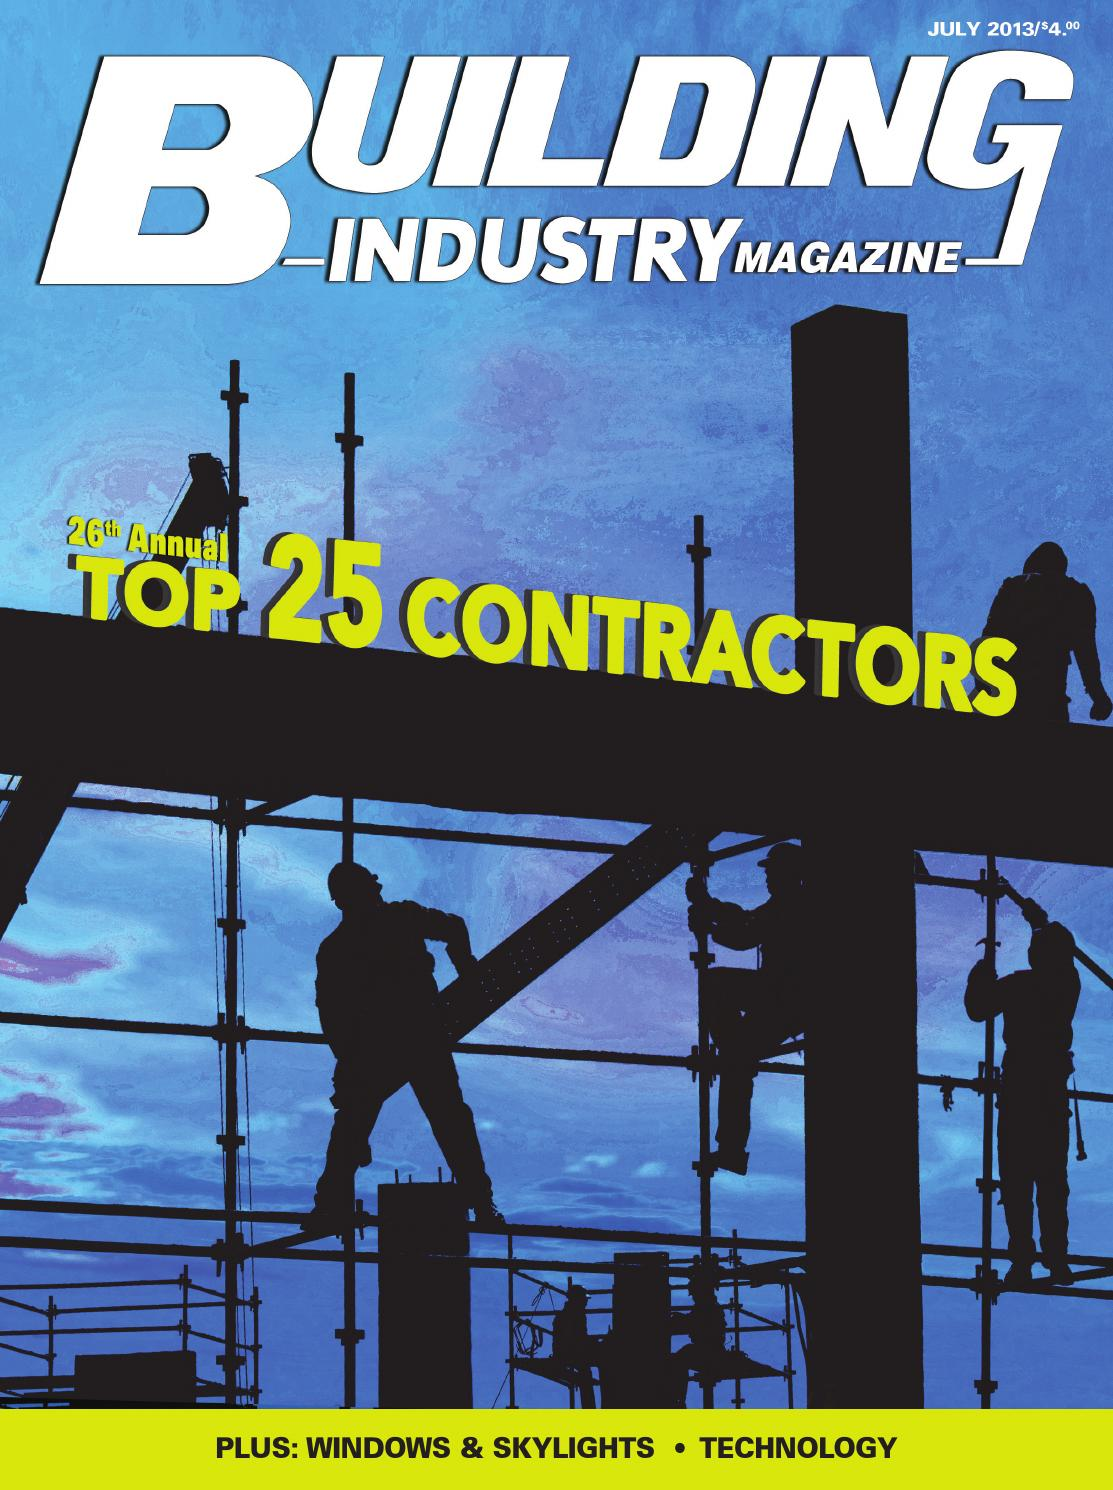 Building industry july 2013 top 25 contractors by ursula for Skylights of hawaii llc